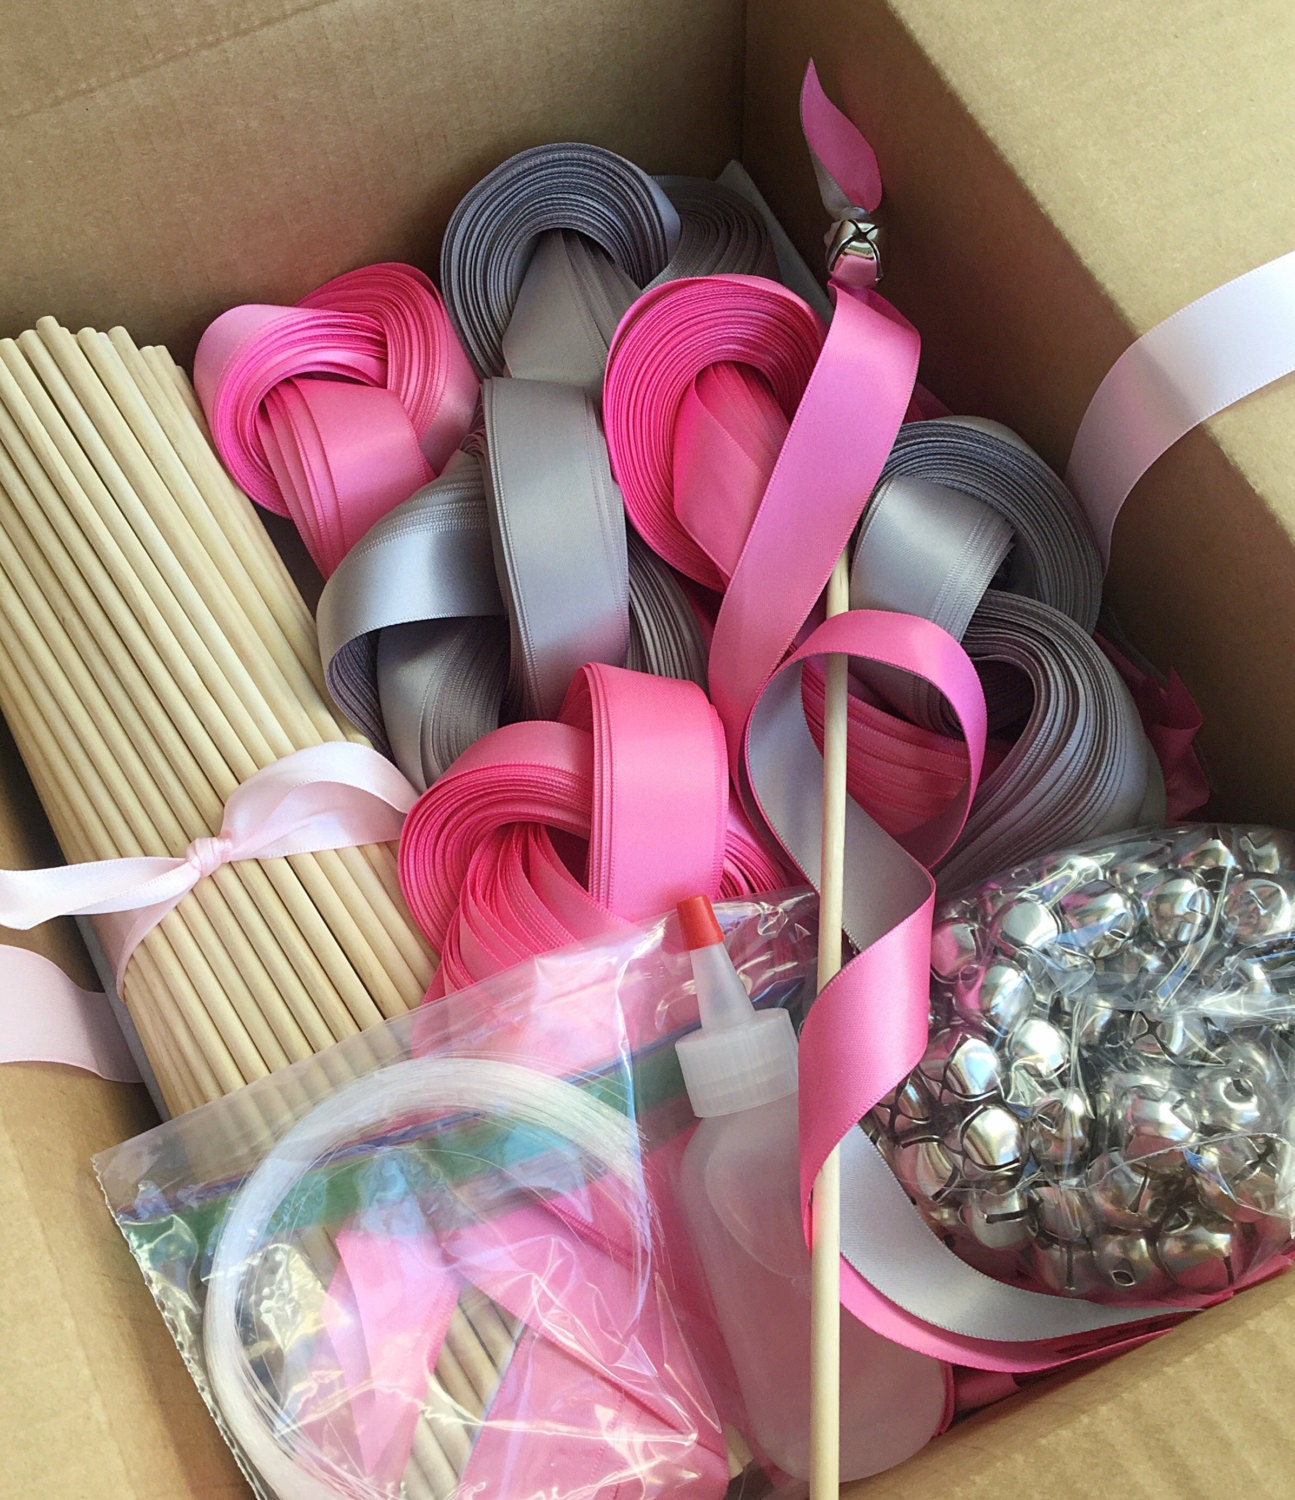 225 Diy Wedding Wand Kit Your Choice Of Ribbon Color From